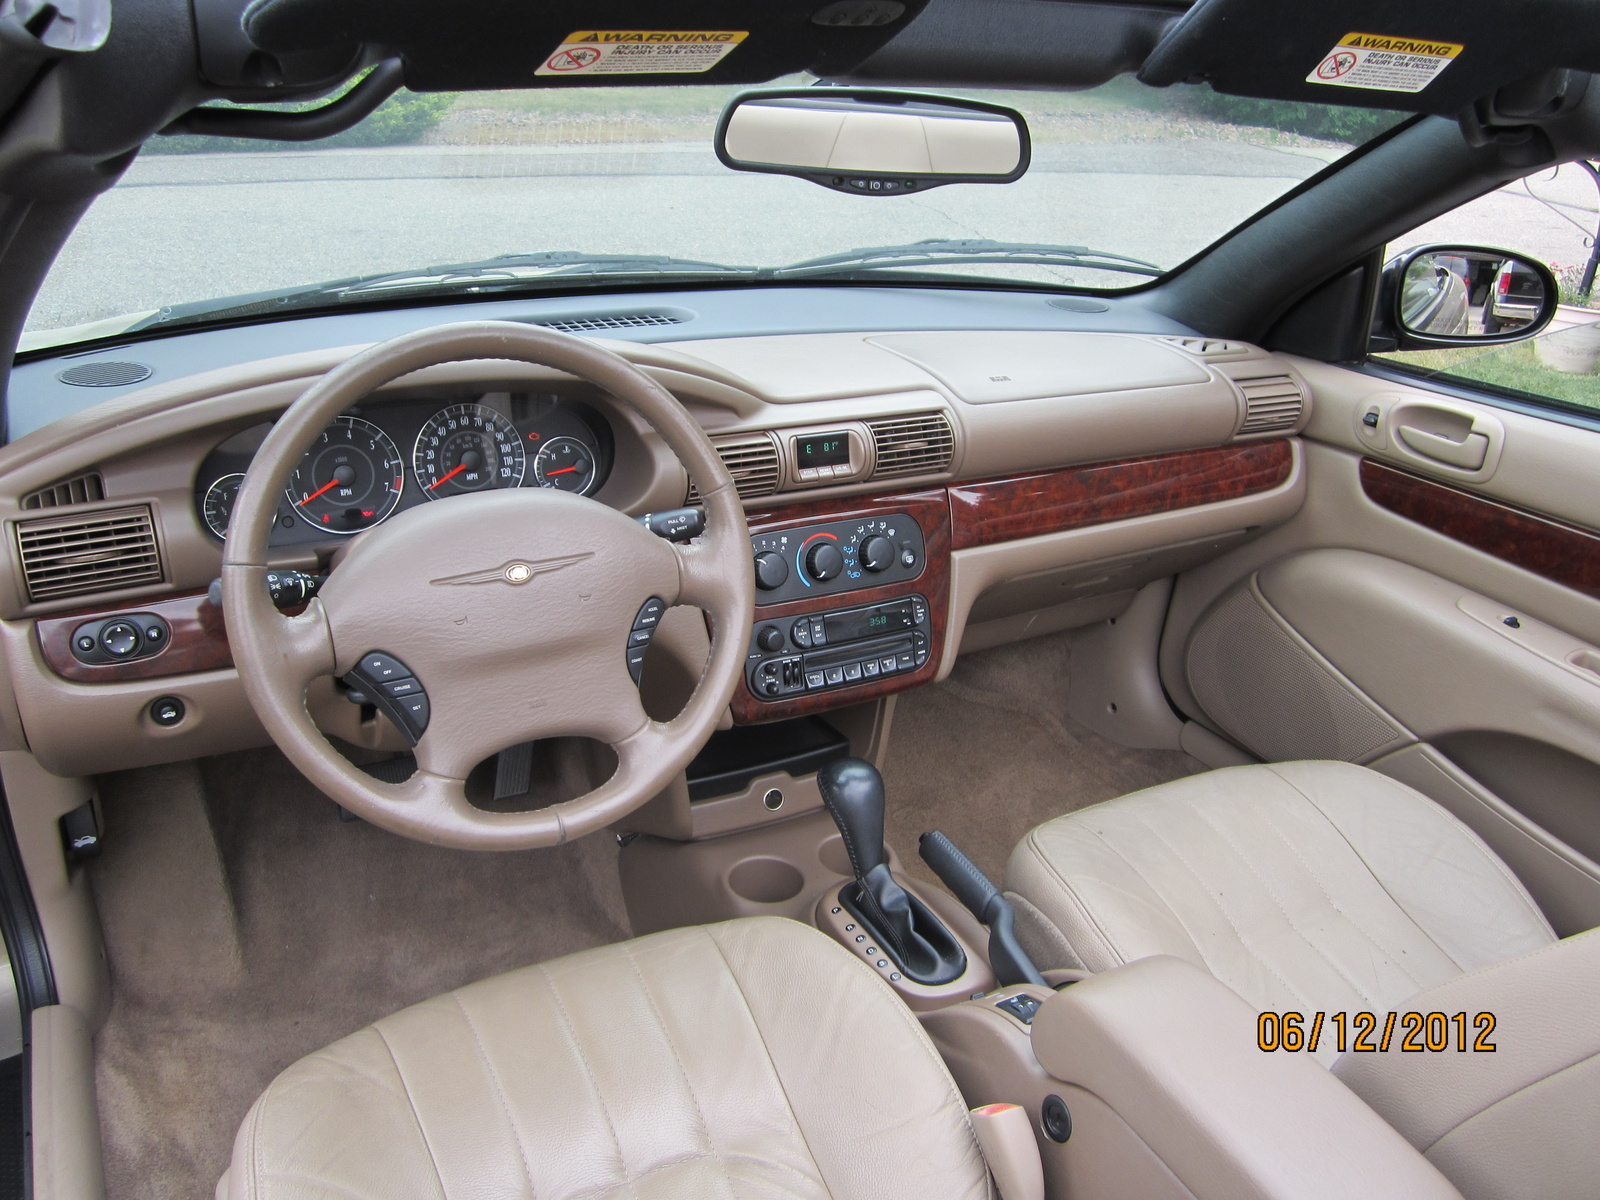 2002 Chrysler Sebring 10